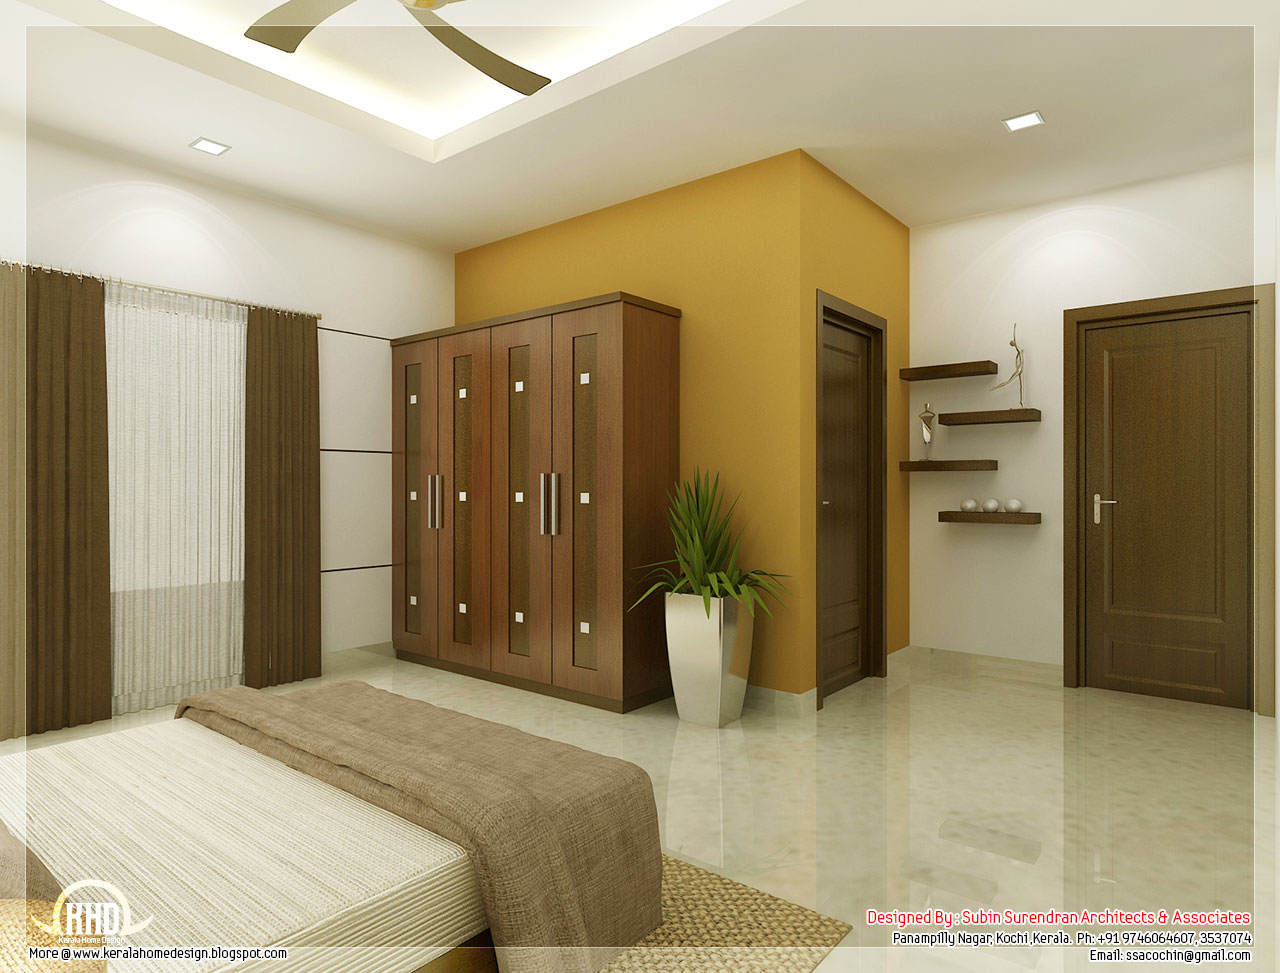 Beautiful bedroom interior designs kerala home design for Beautiful rooms interior design